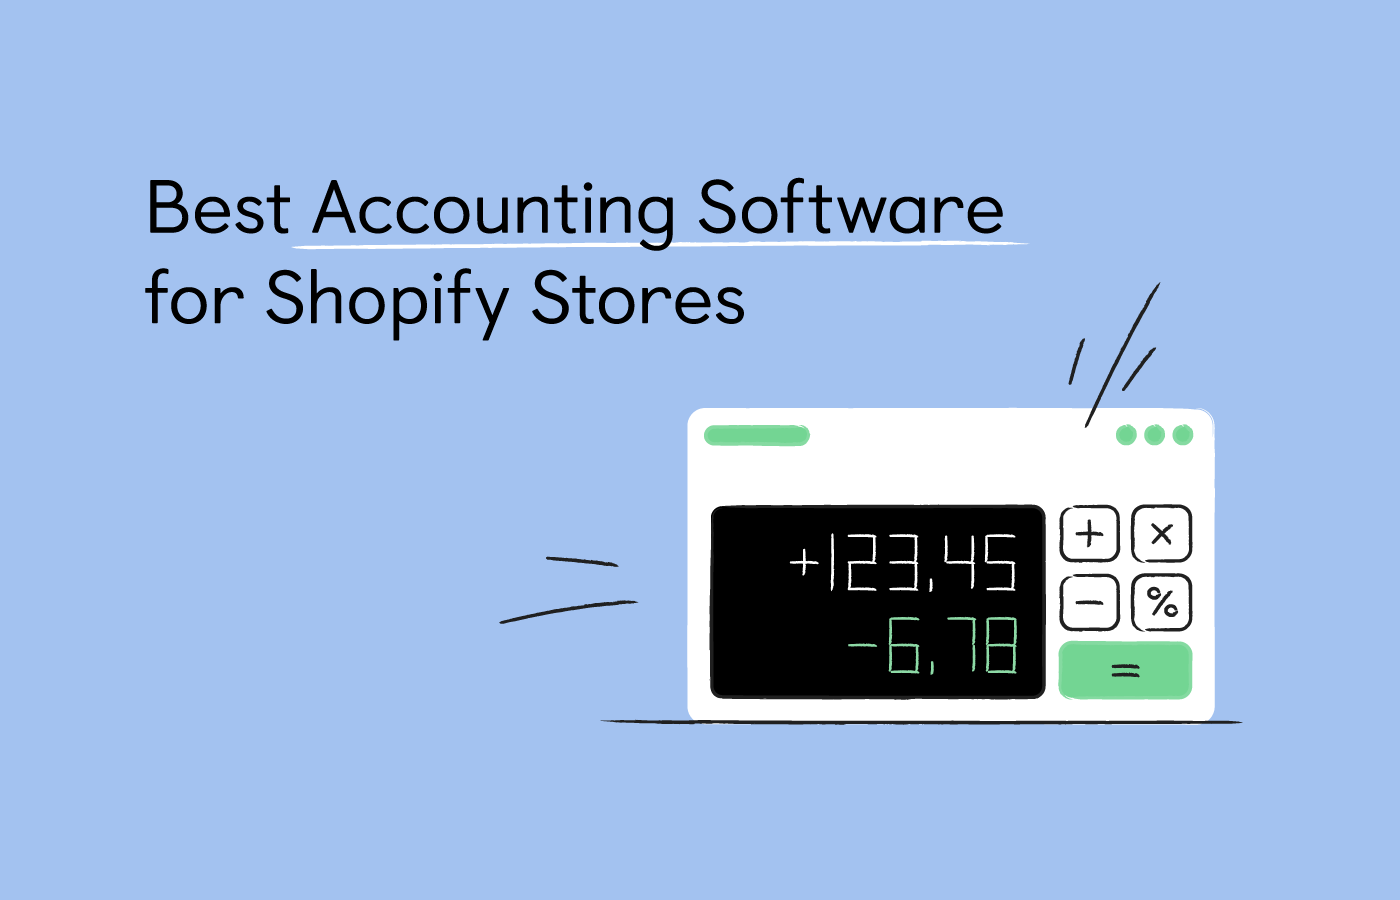 10 Best Accounting Software for Shopify in 2021